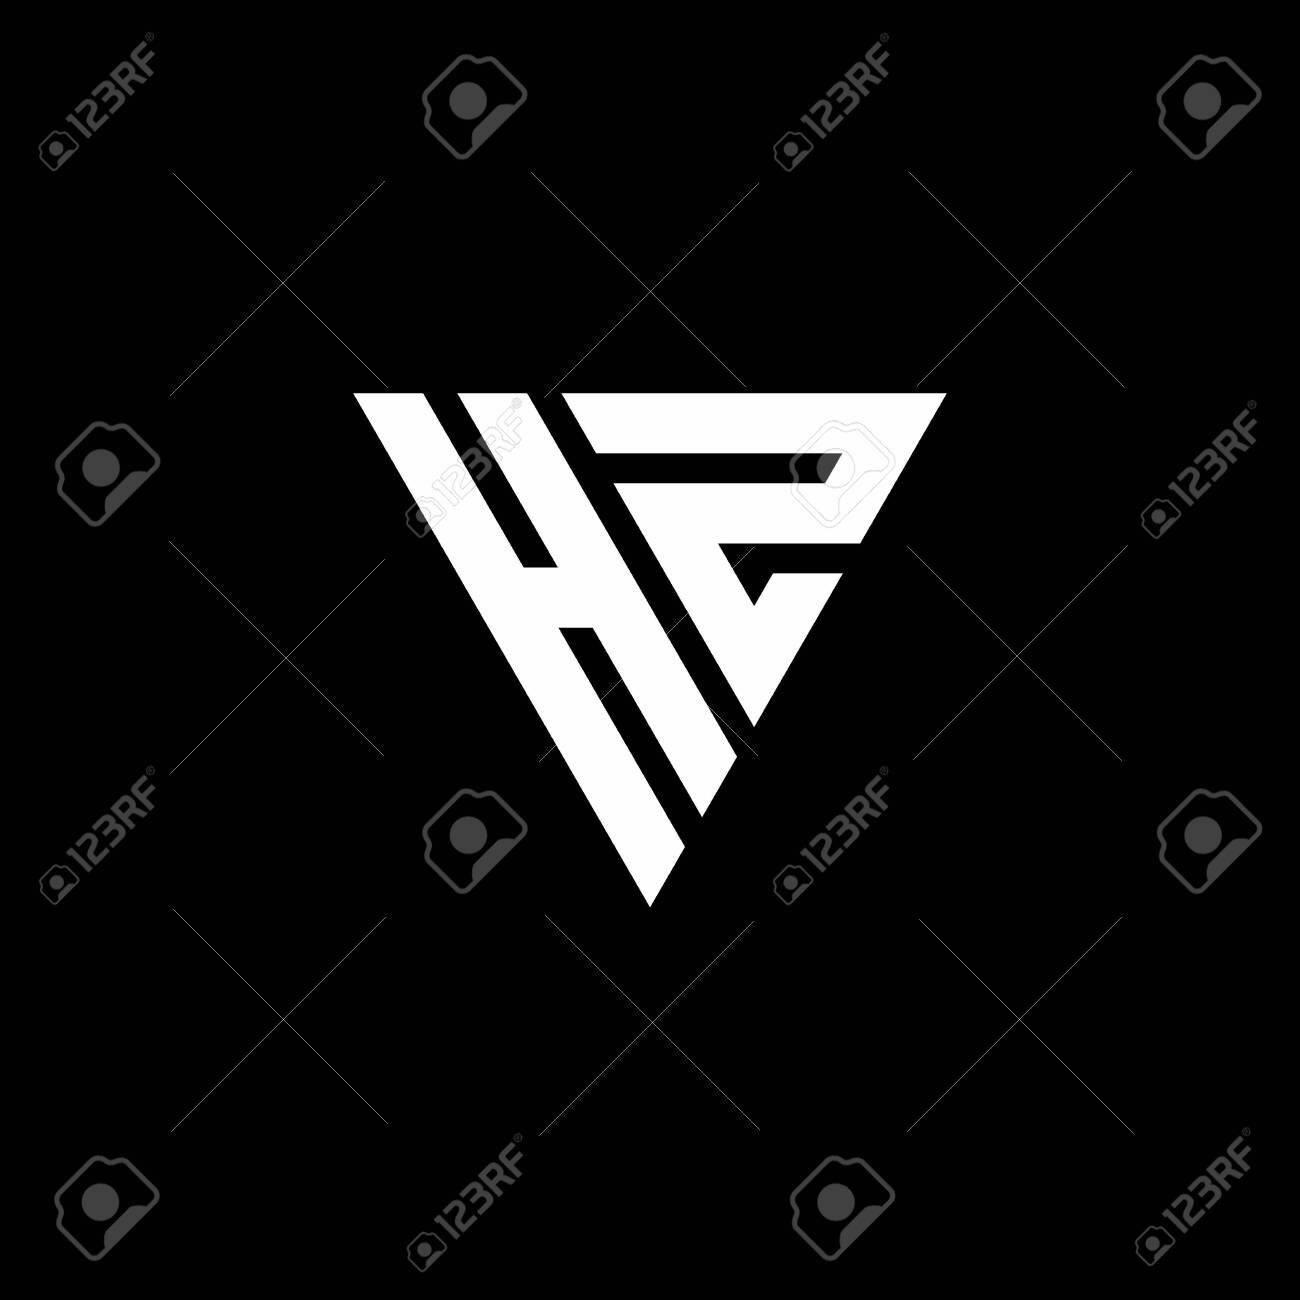 HZ Logo letter monogram with triangle shape design template isolated on black background - 143378283